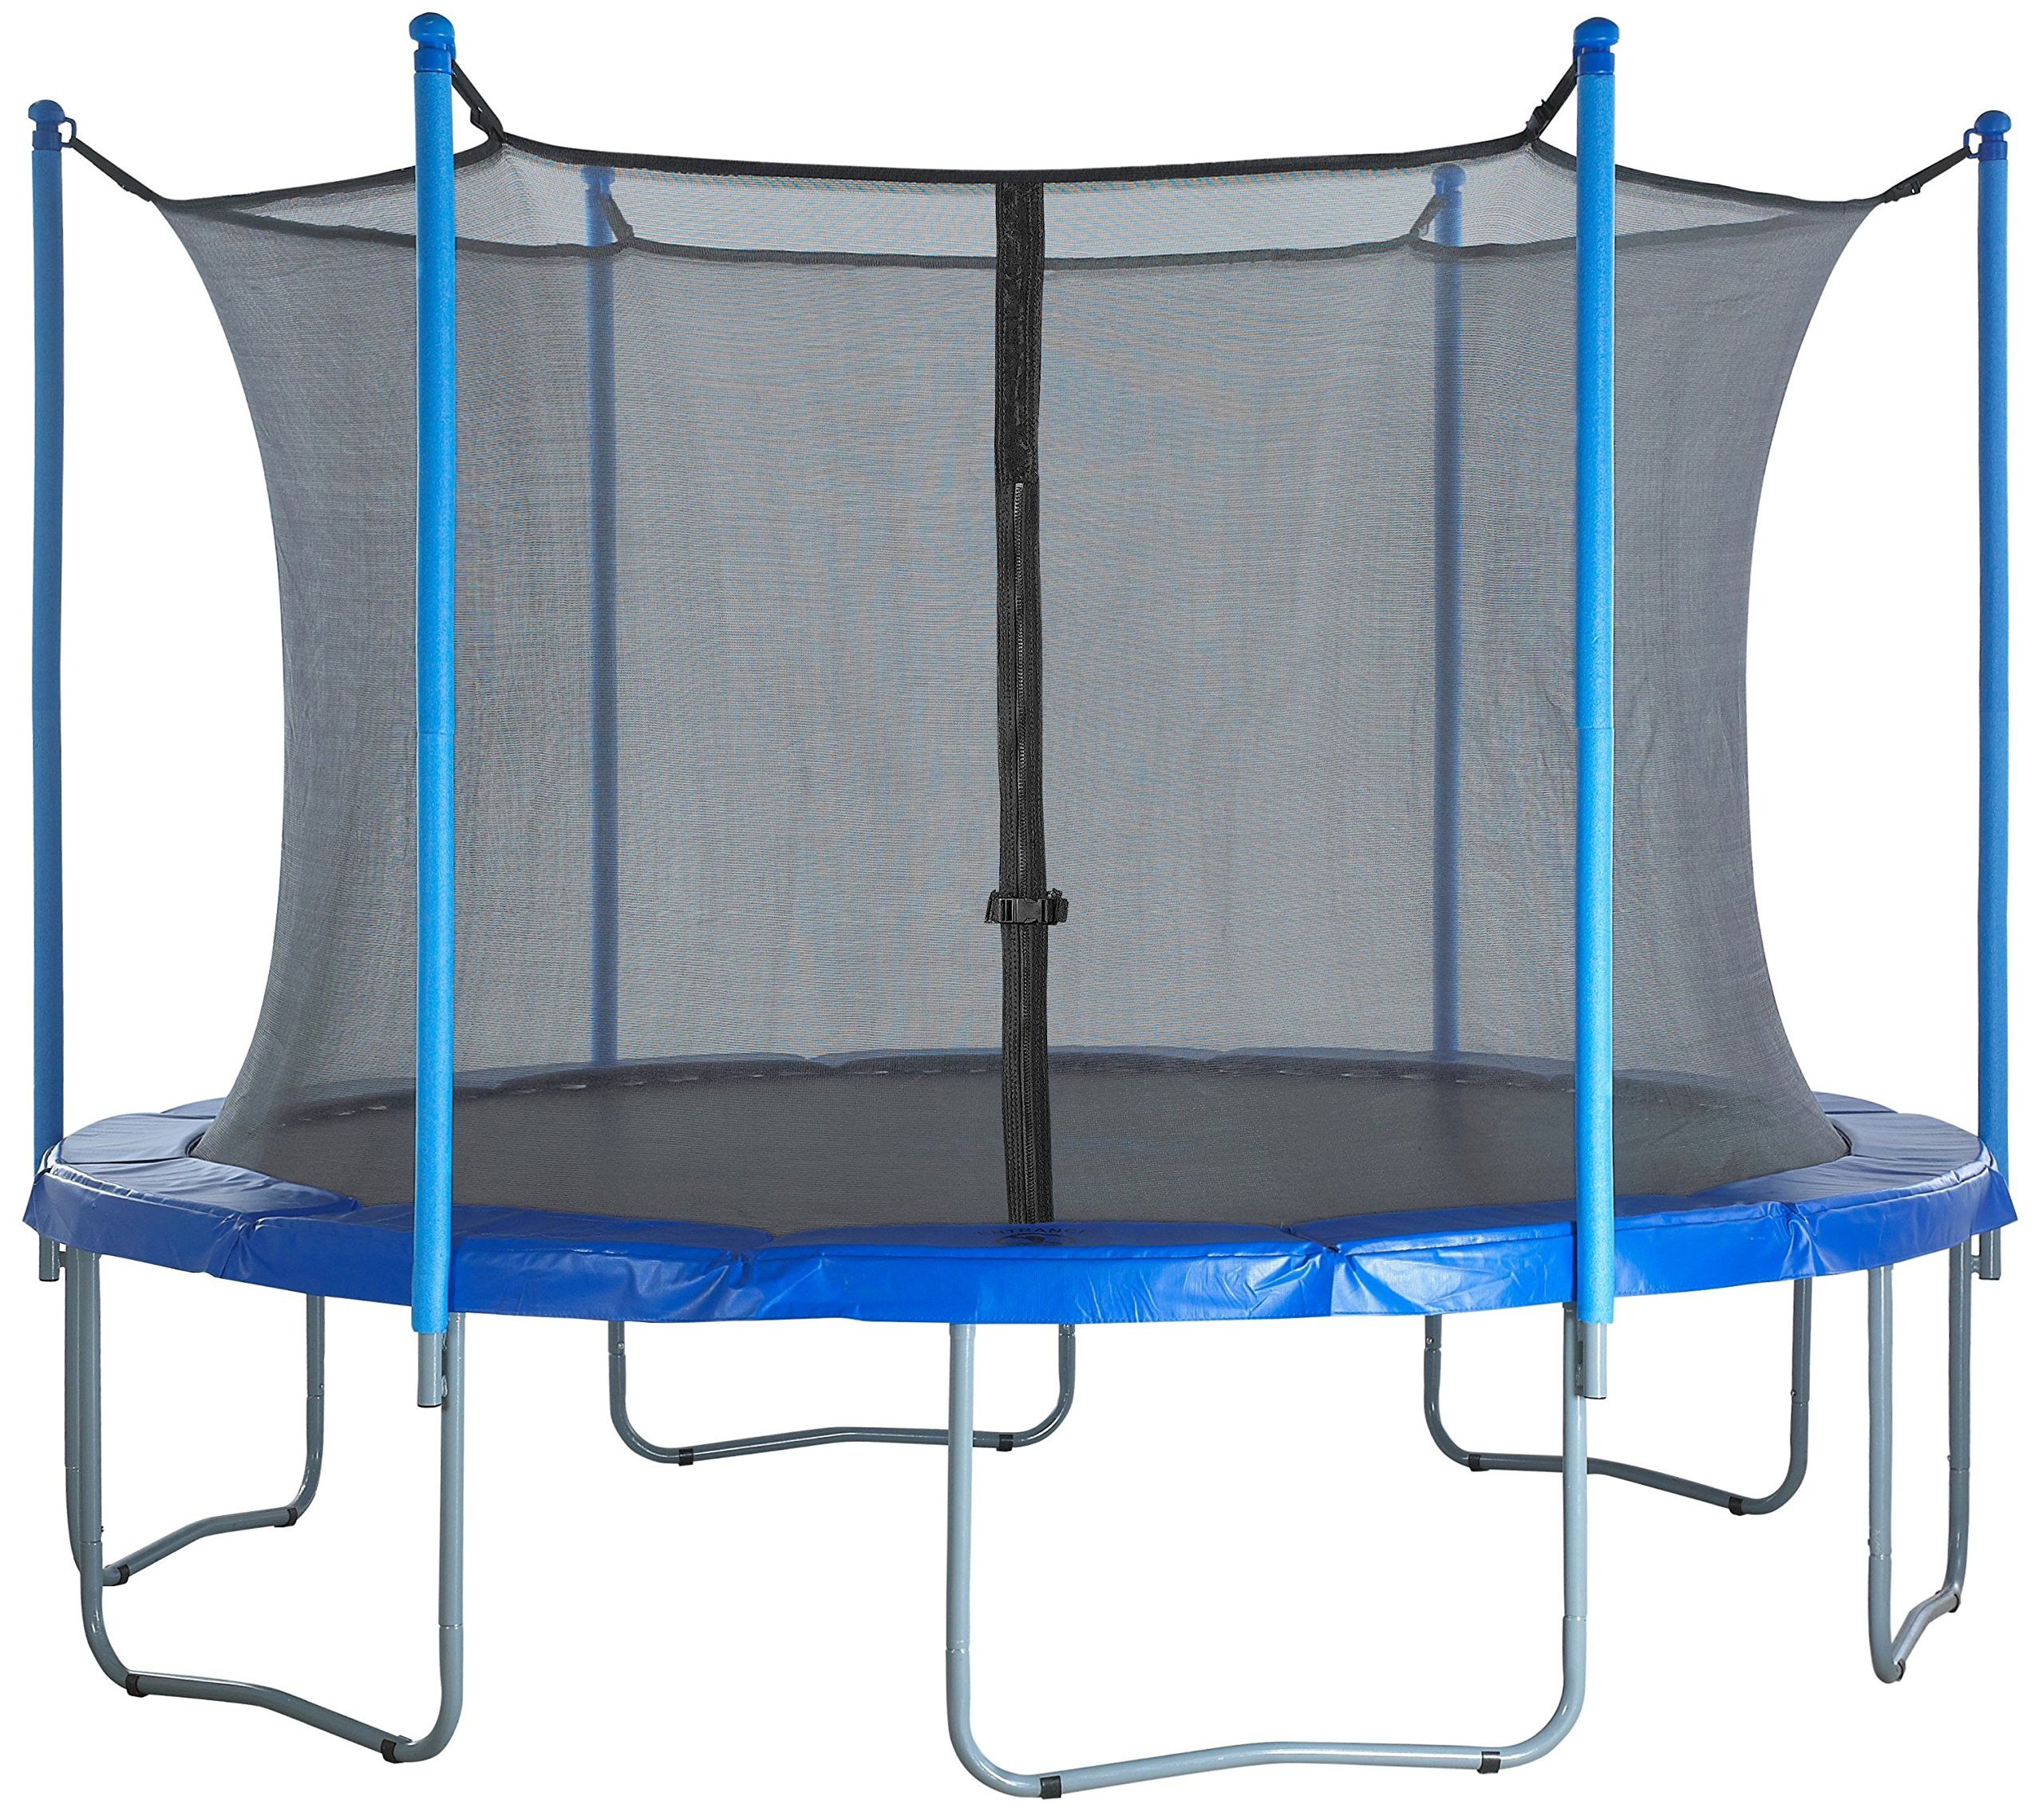 Upper Bounce Replacement 15' Trampoline Enclosure Safety Netting Fence Fits 15 FT Round Frames Using 6 Poles or 3 Arches (poles not included) by Upper Bounce (Image #7)